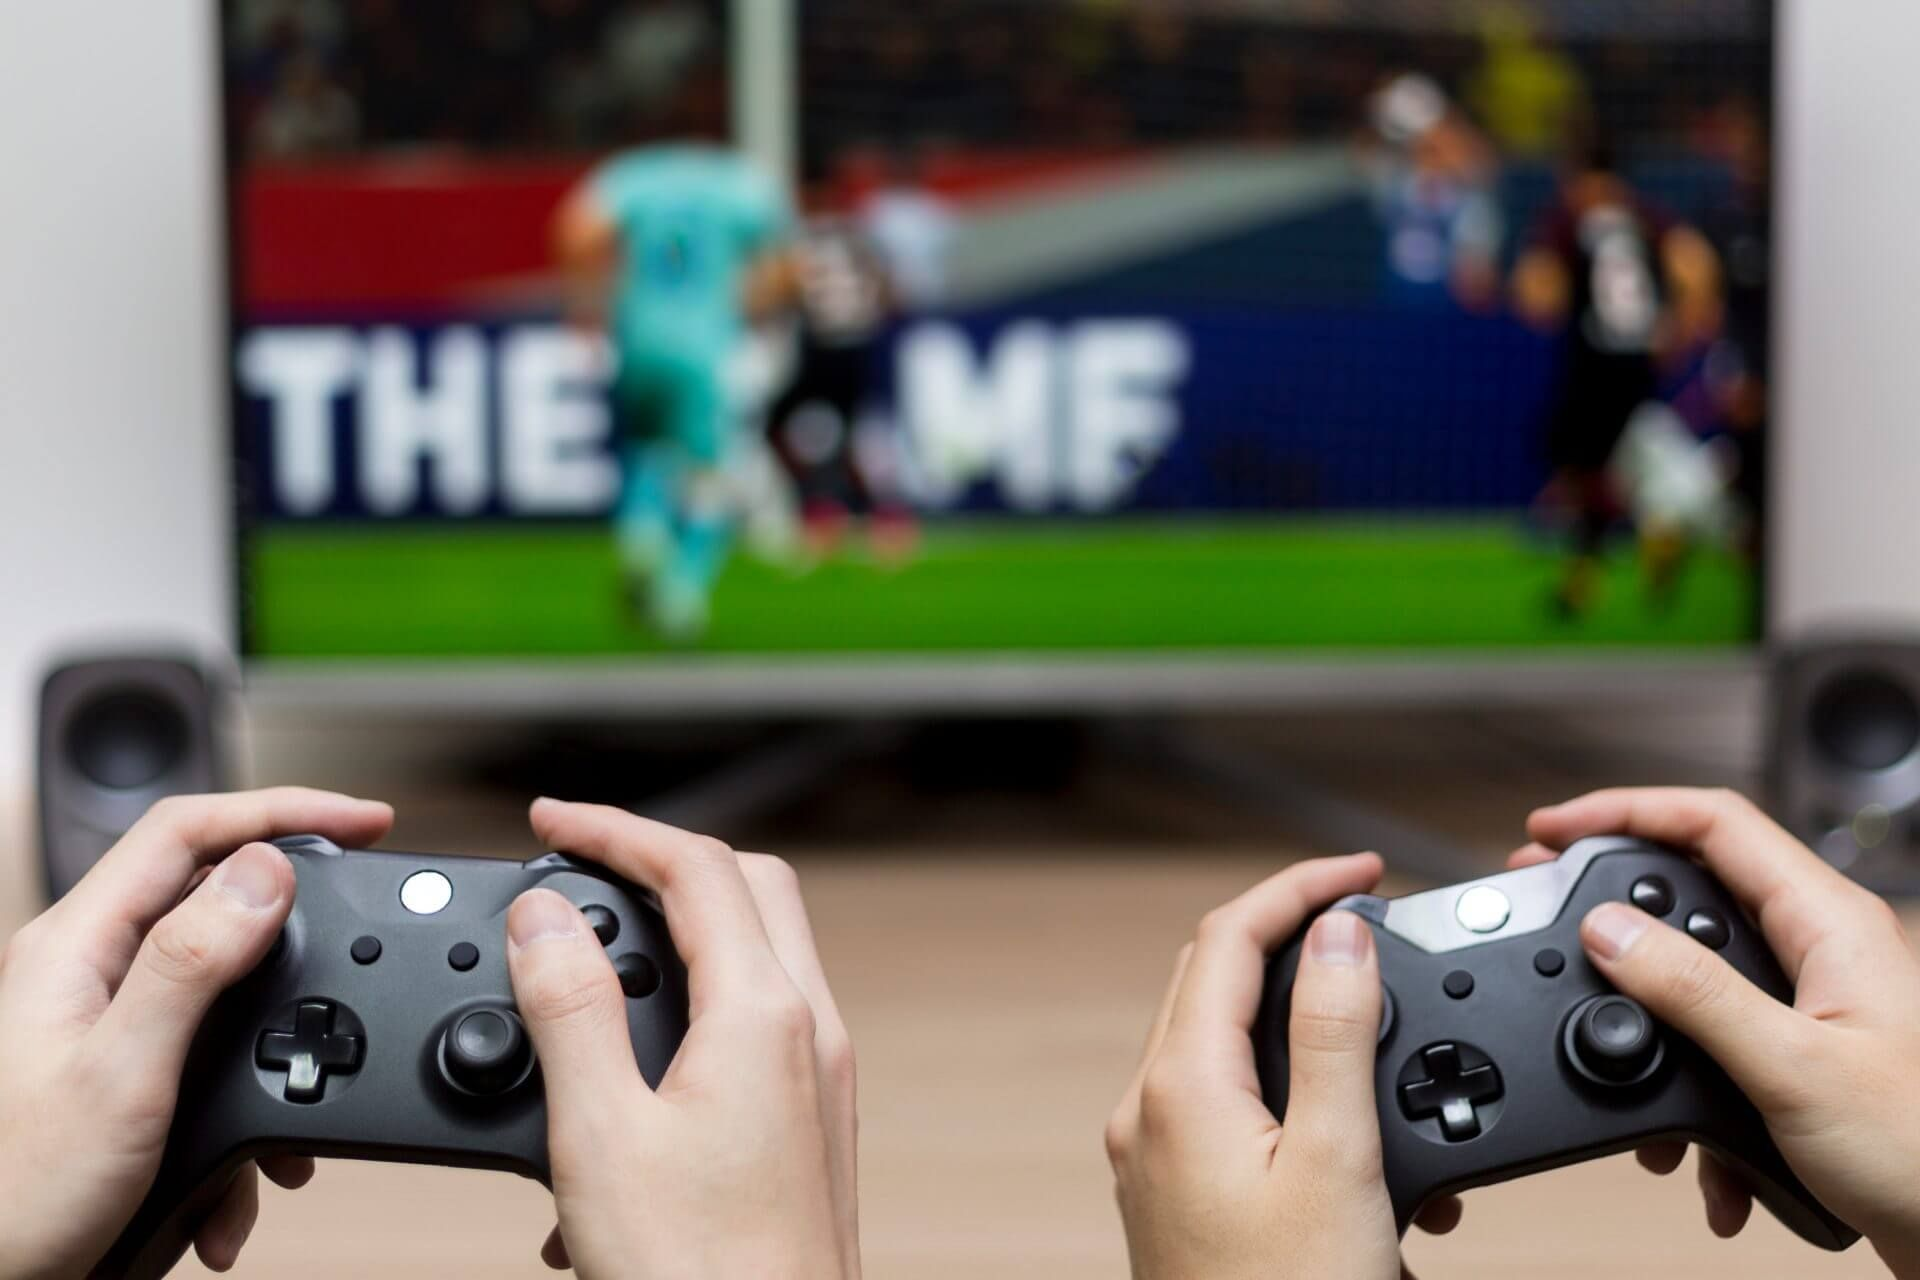 How to play 2 player browser games in 2020 Games, Play